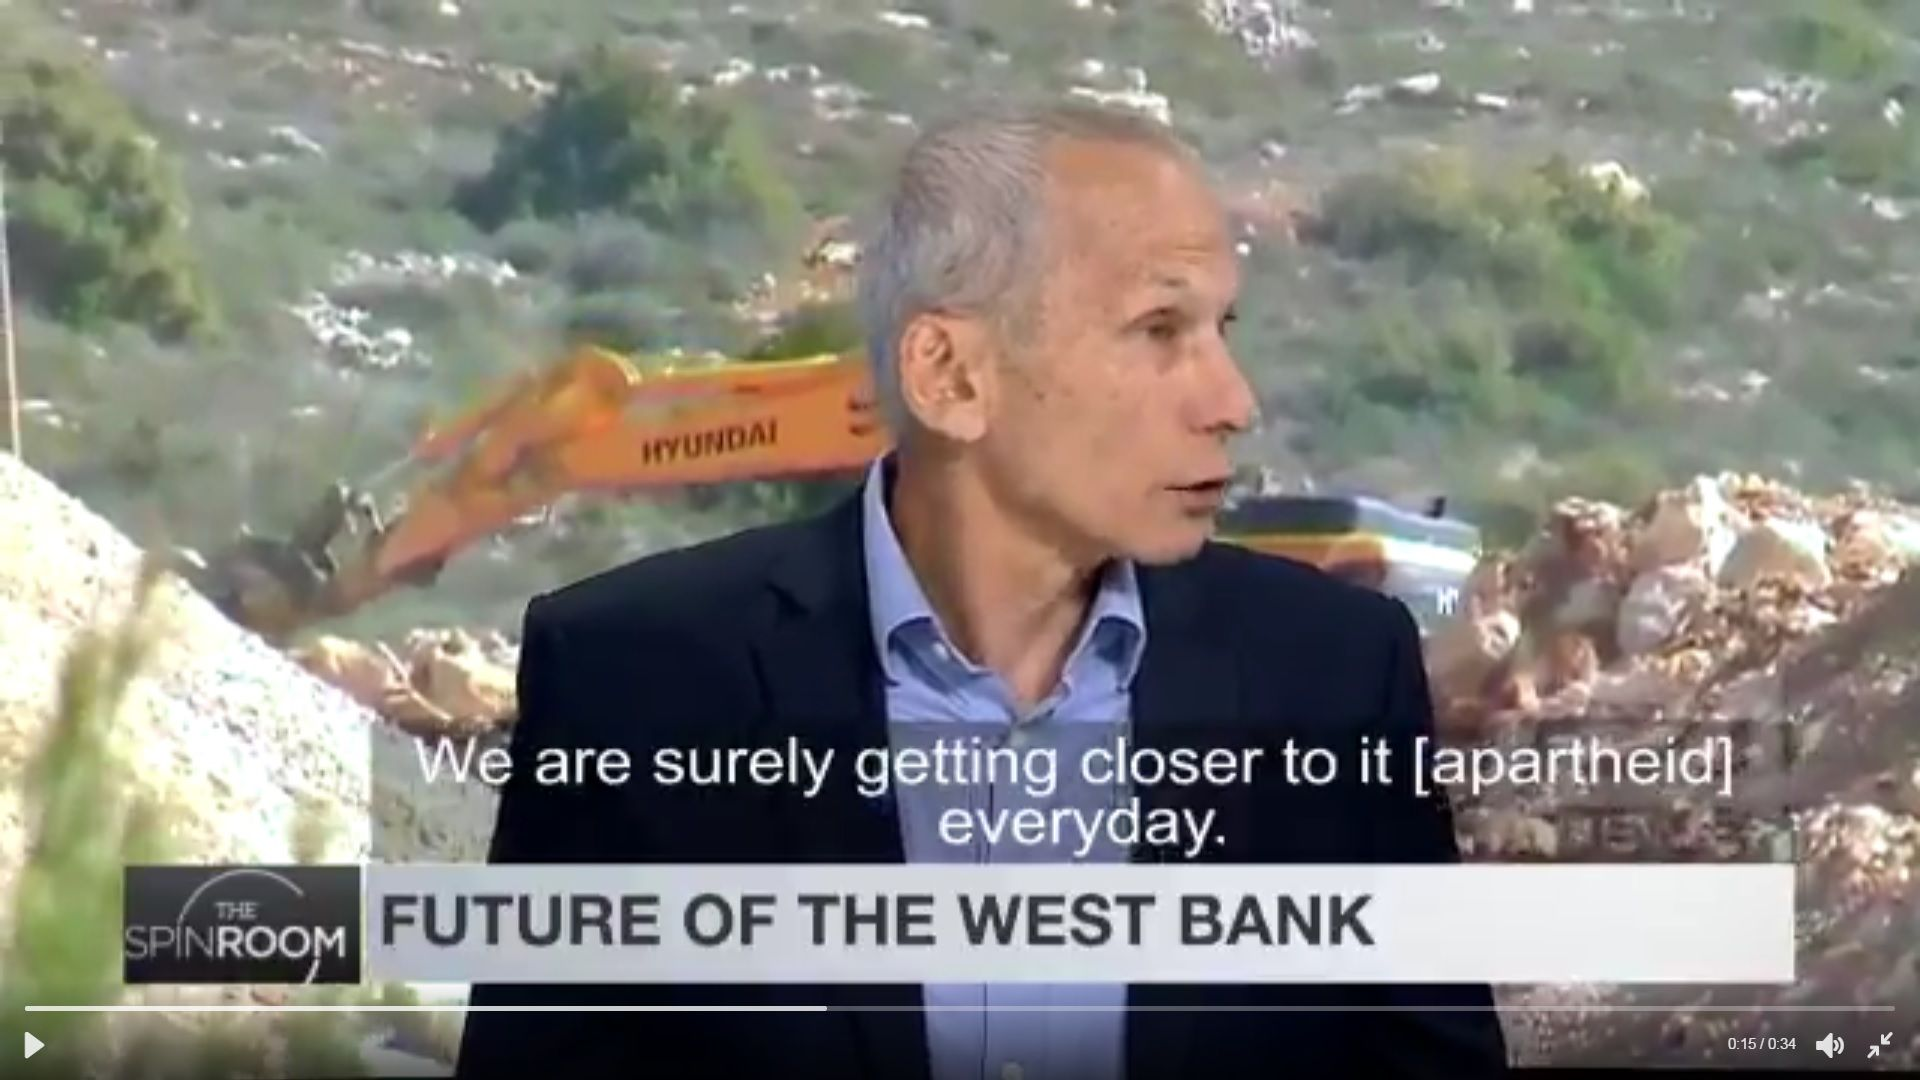 Israeli lawmaker Bar-Lev to i24NEWS: Israel 'closer to apartheid every day'